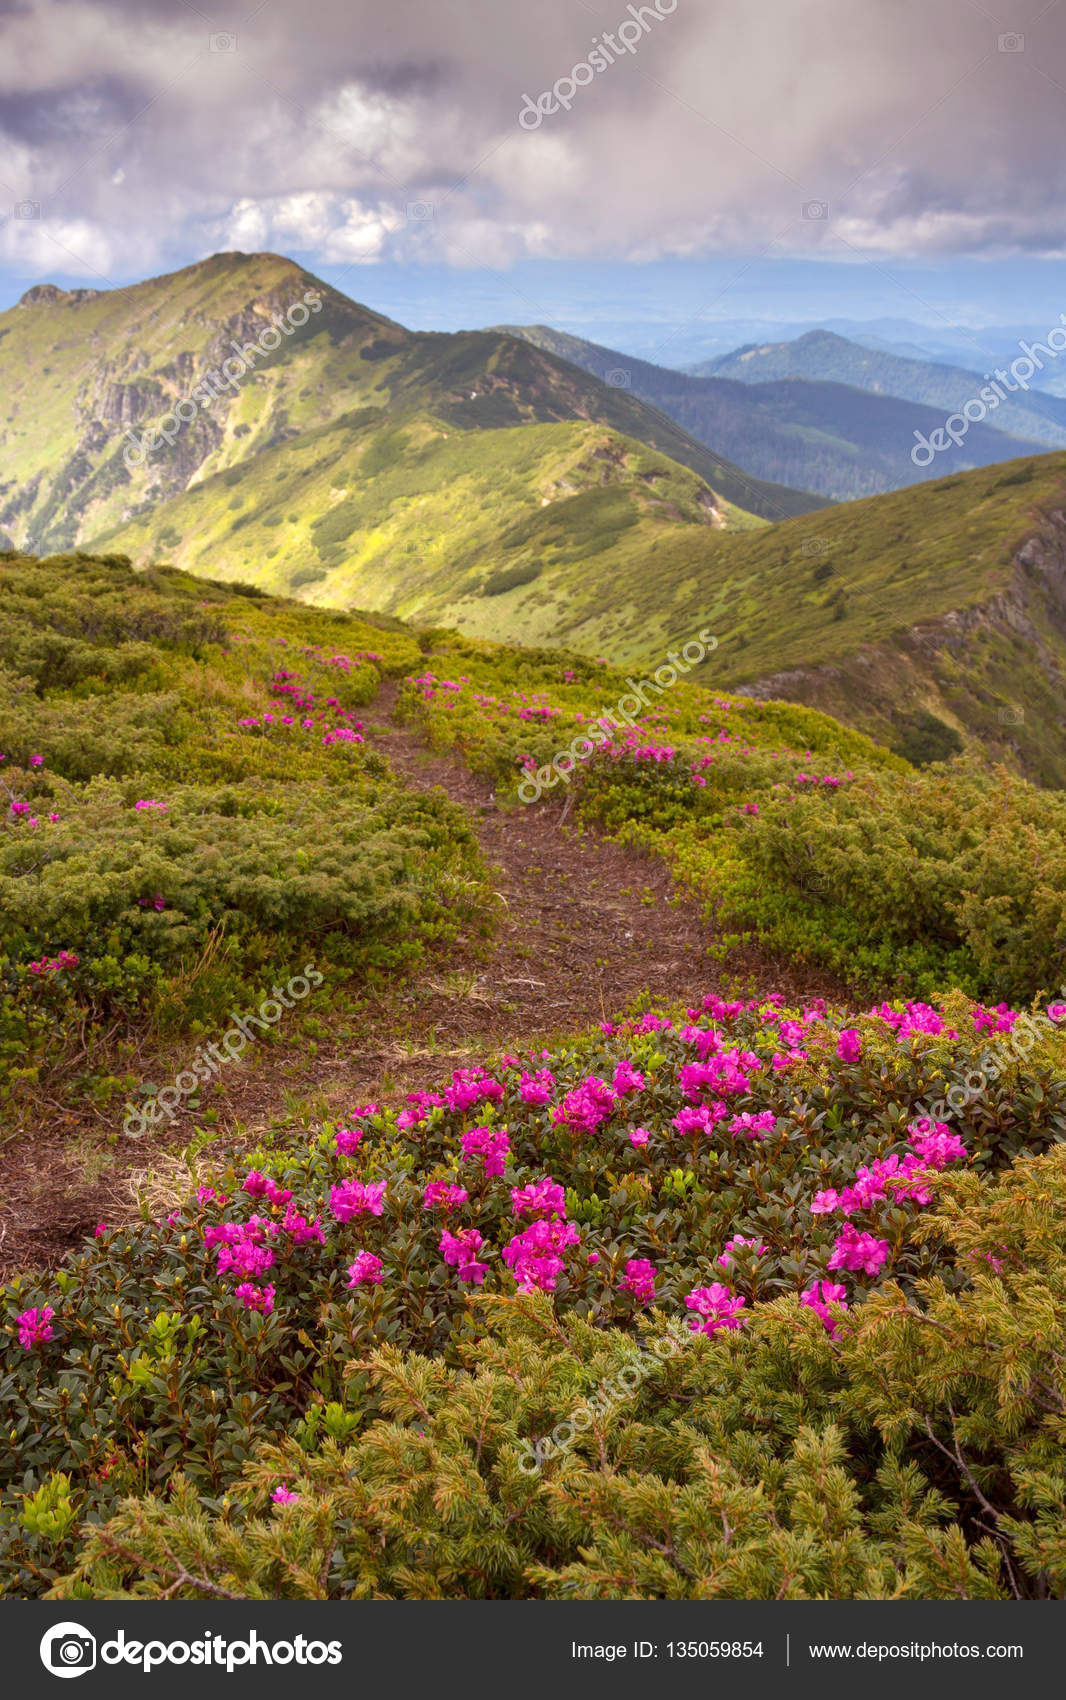 Amazing Colorful Spring View Of Mountains With Pink Rhododendron